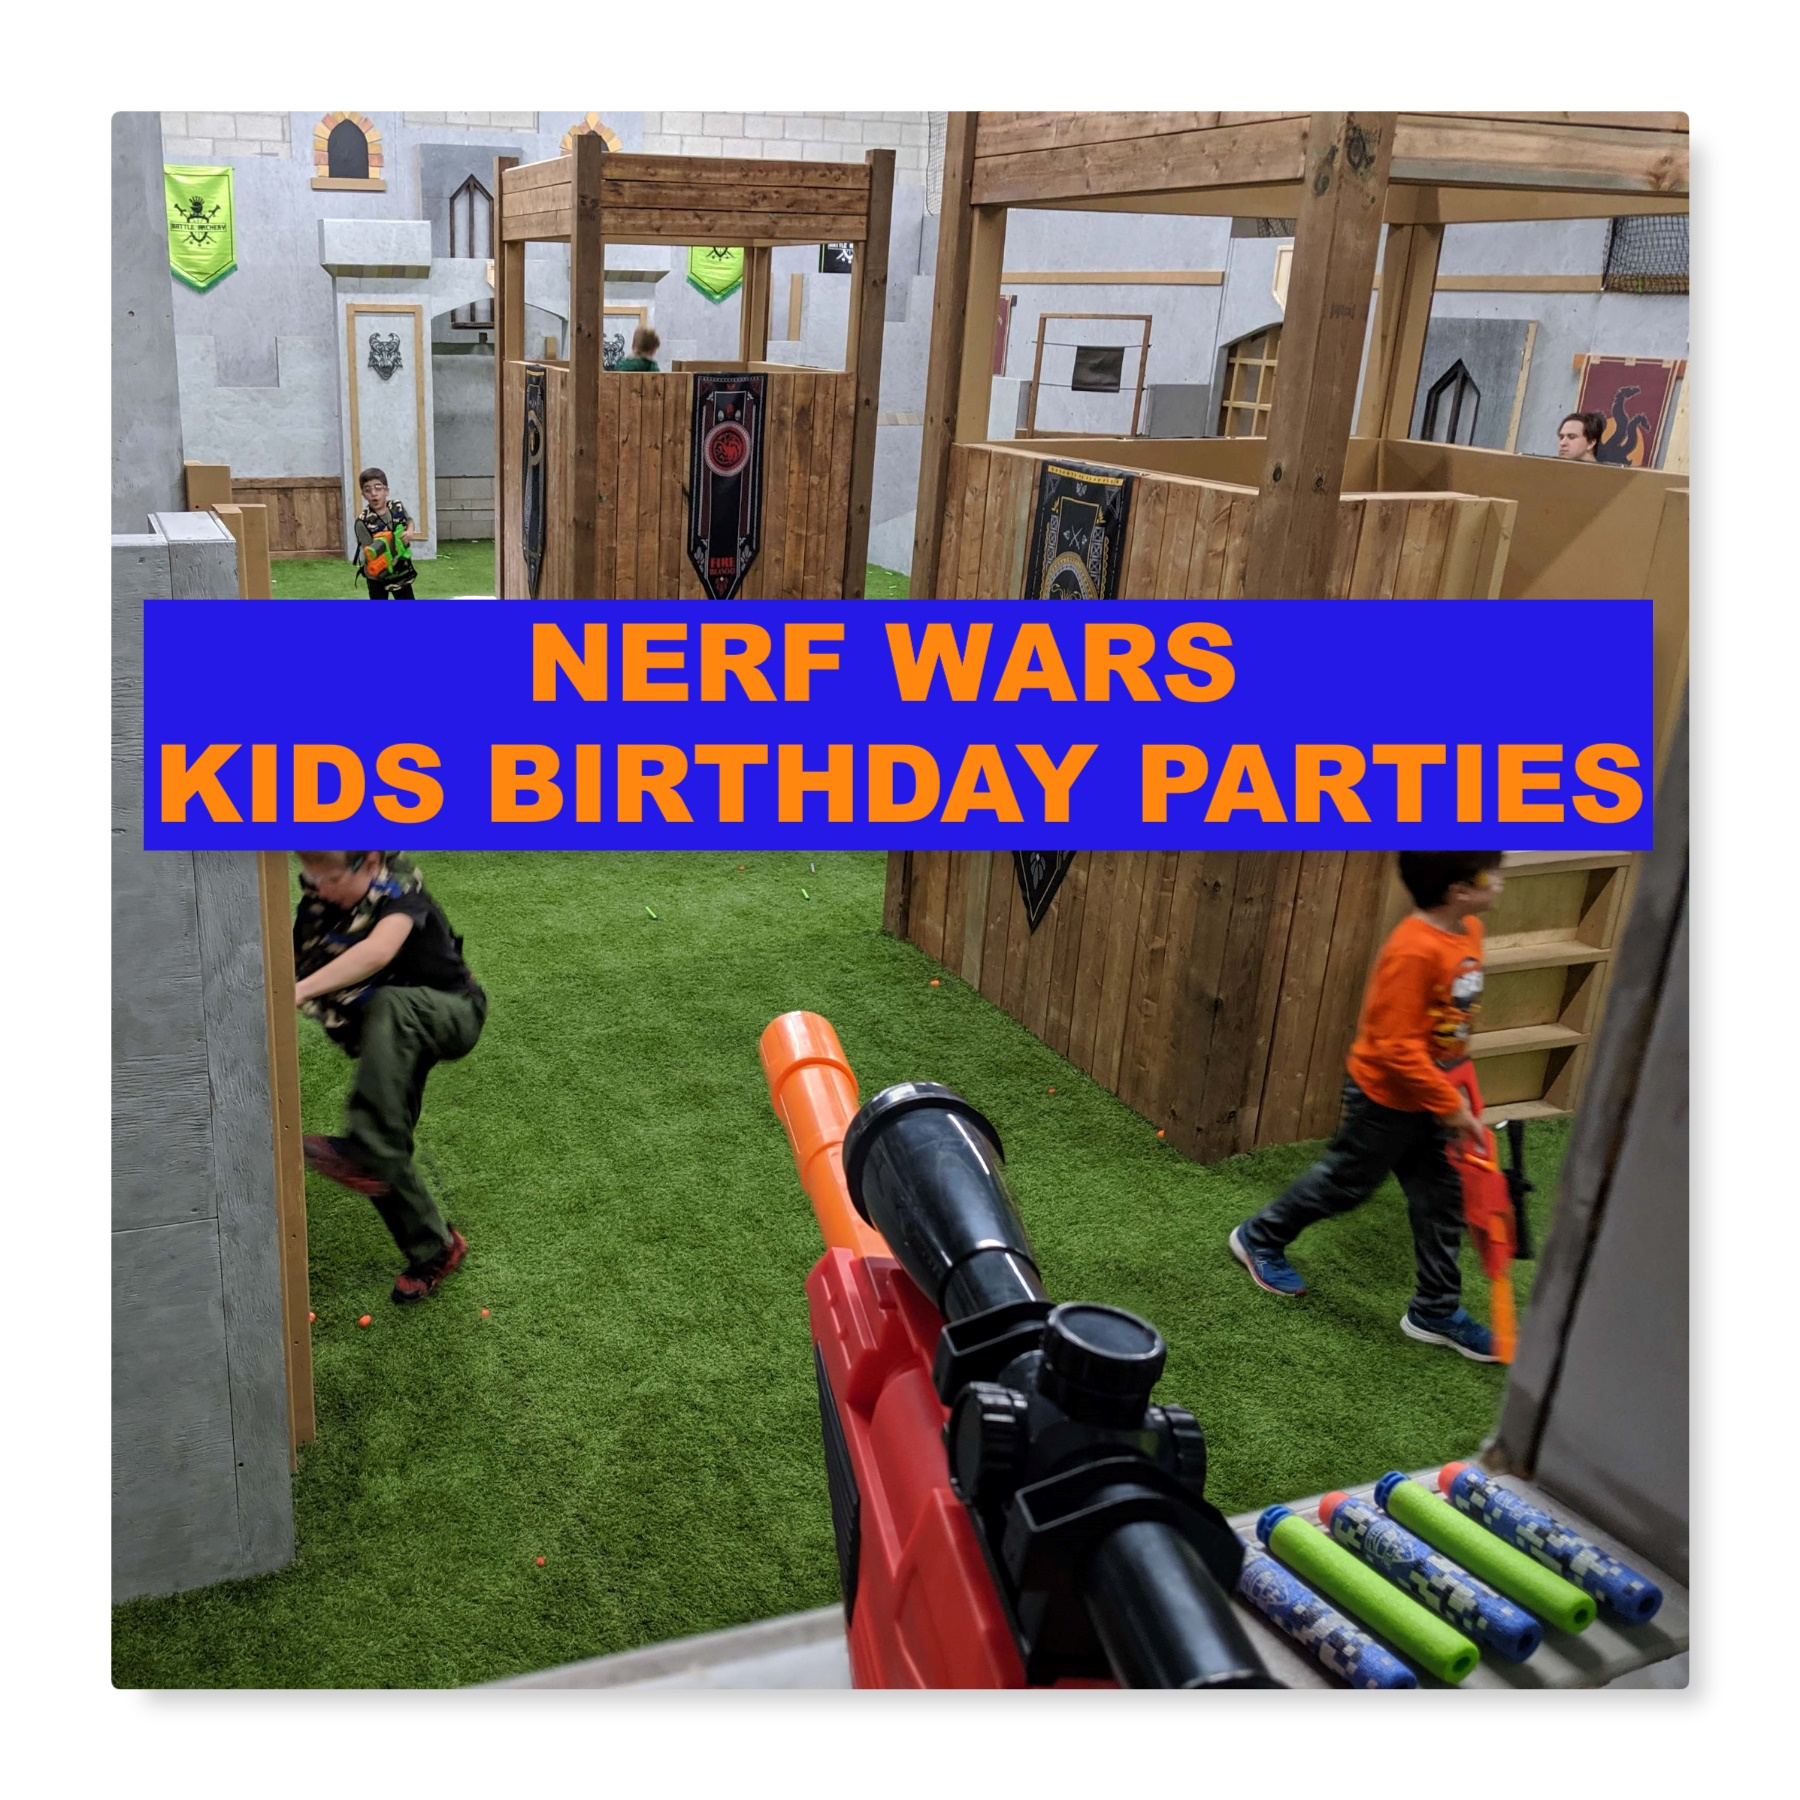 NERF WARS KIDS BIRTHDAY PARTY